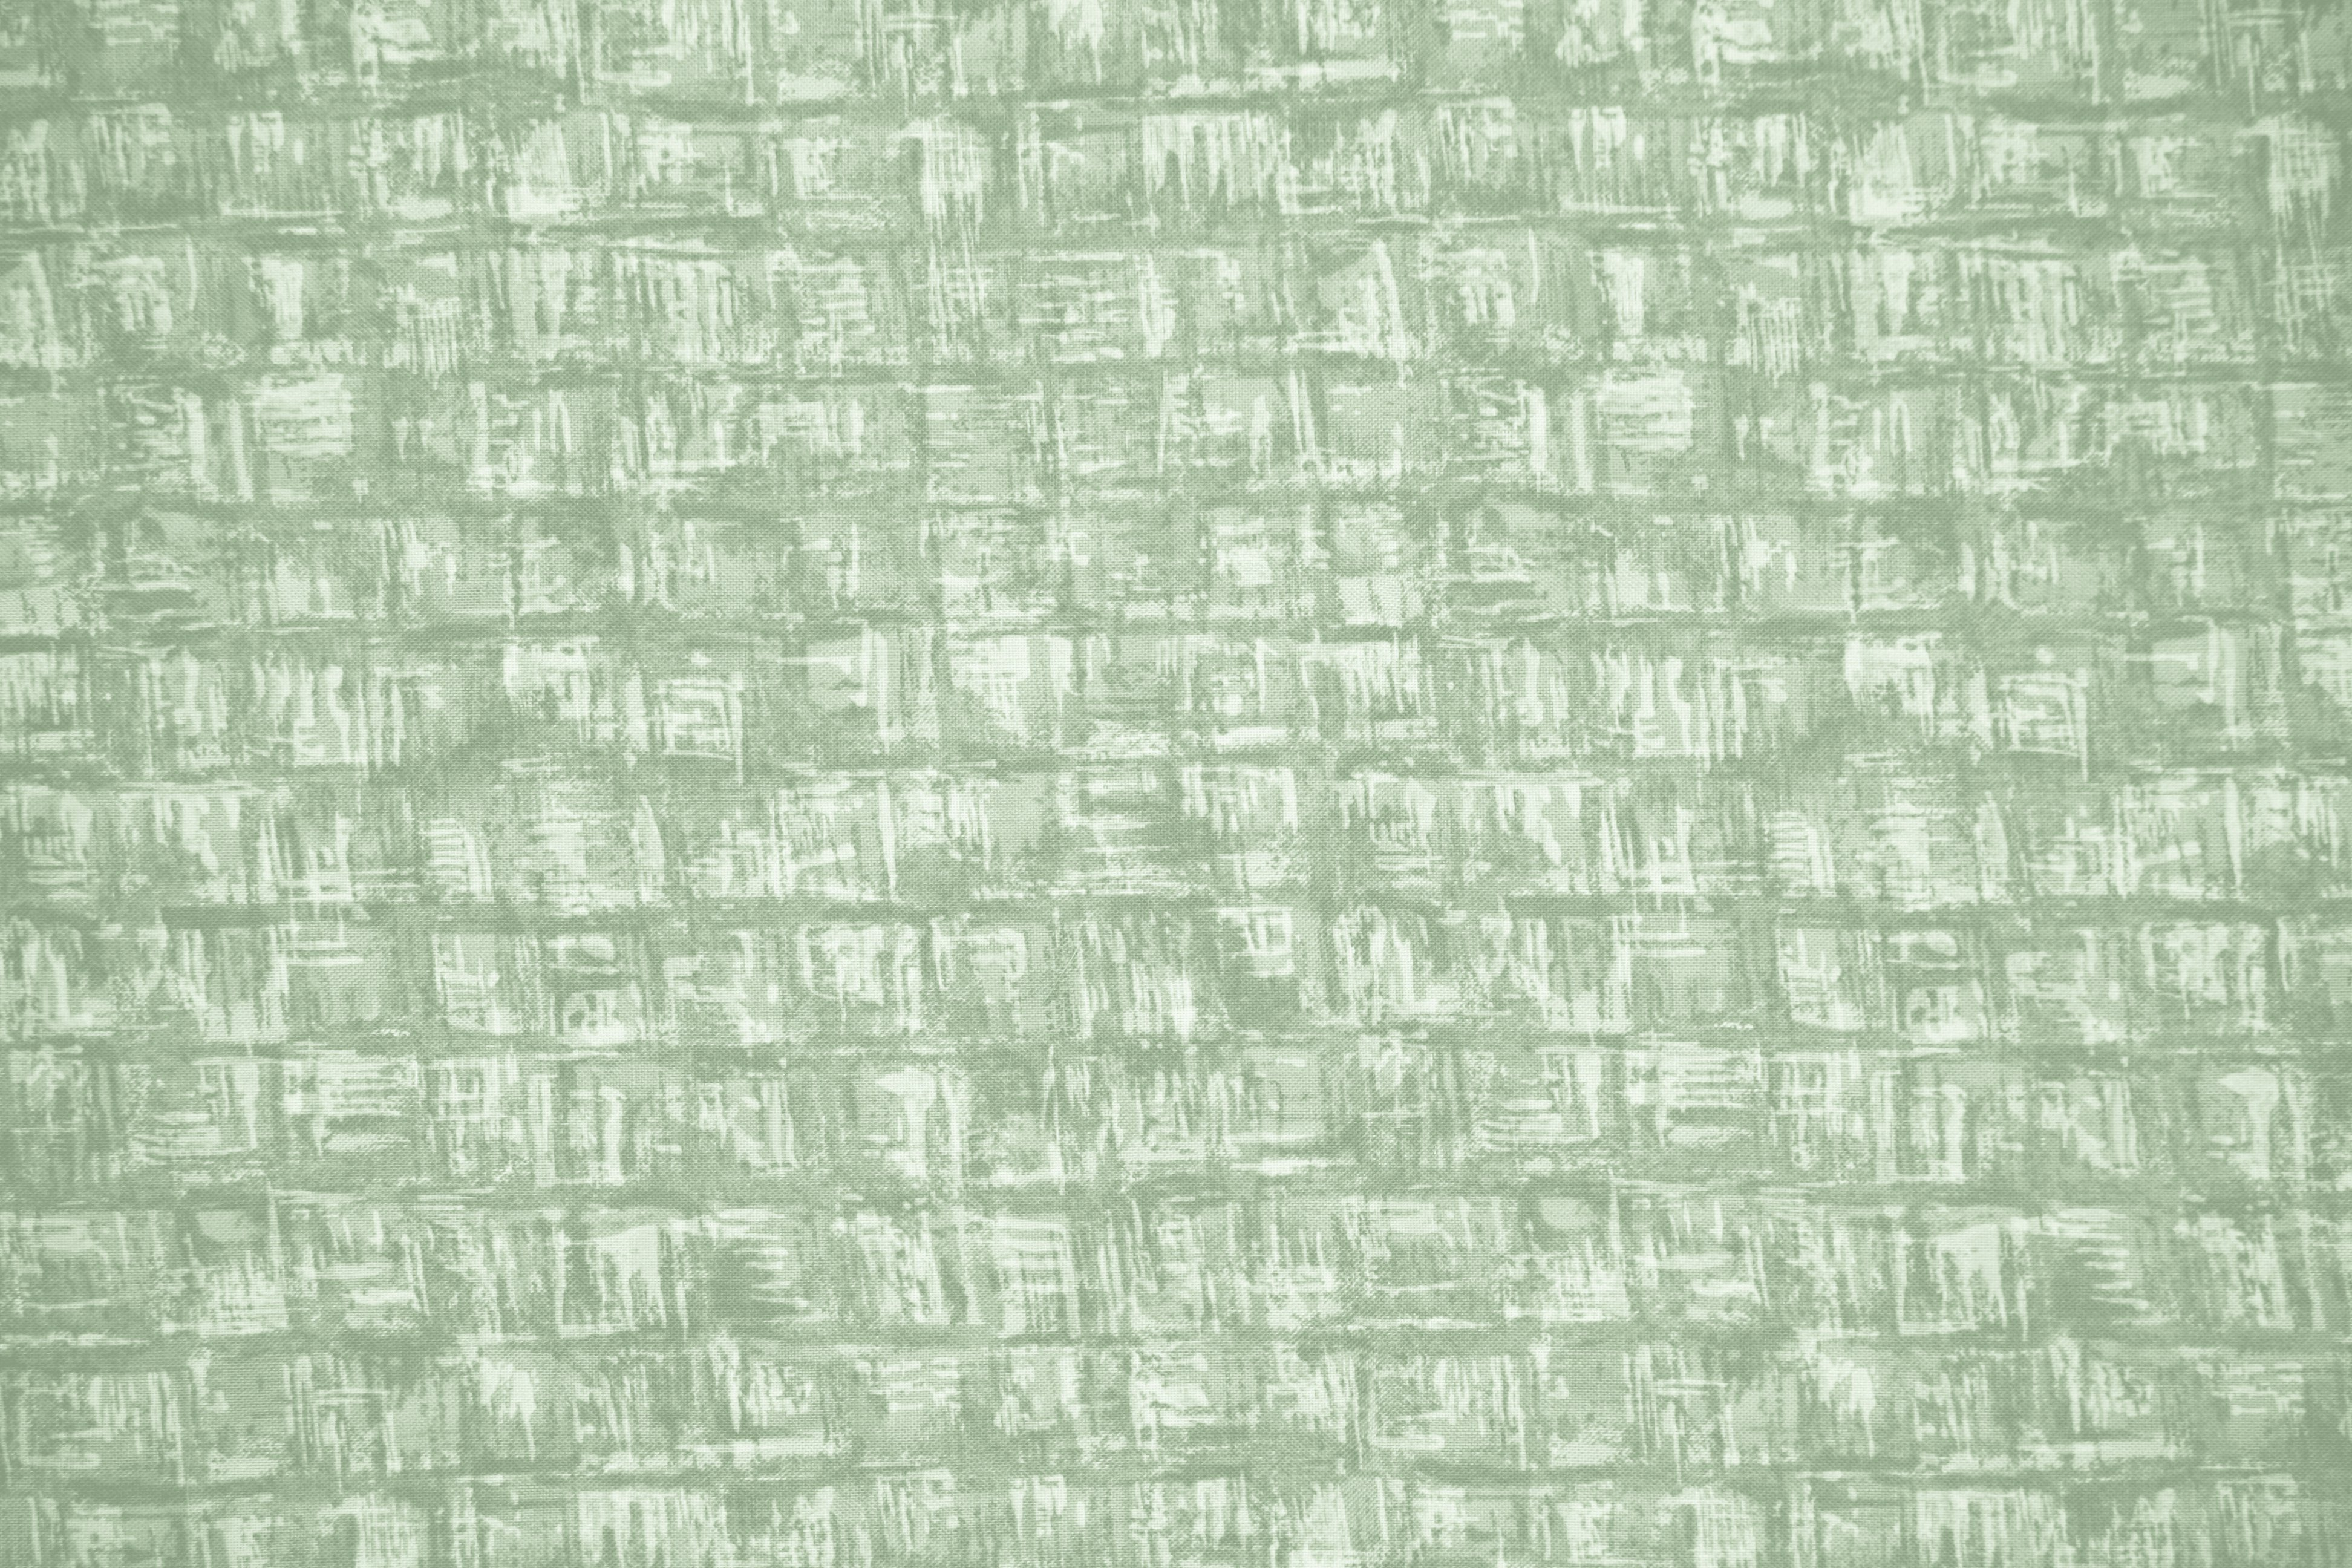 Sage Green Abstract Squares Fabric Texture Picture Free Photograph Photos Public Domain